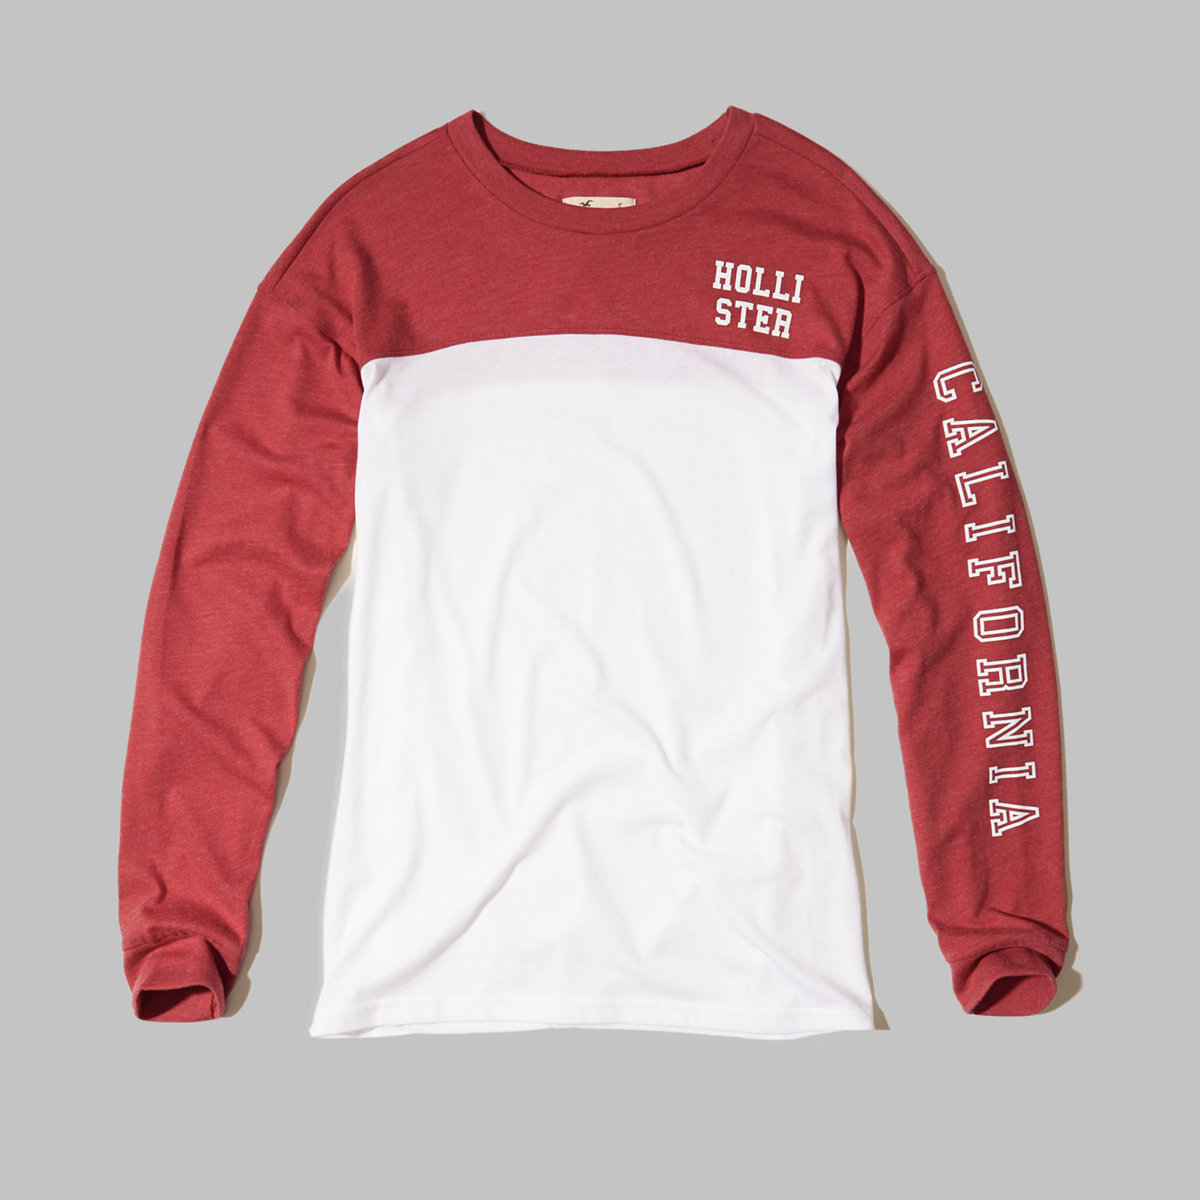 Long-Sleeve Colorblock Graphic Tee